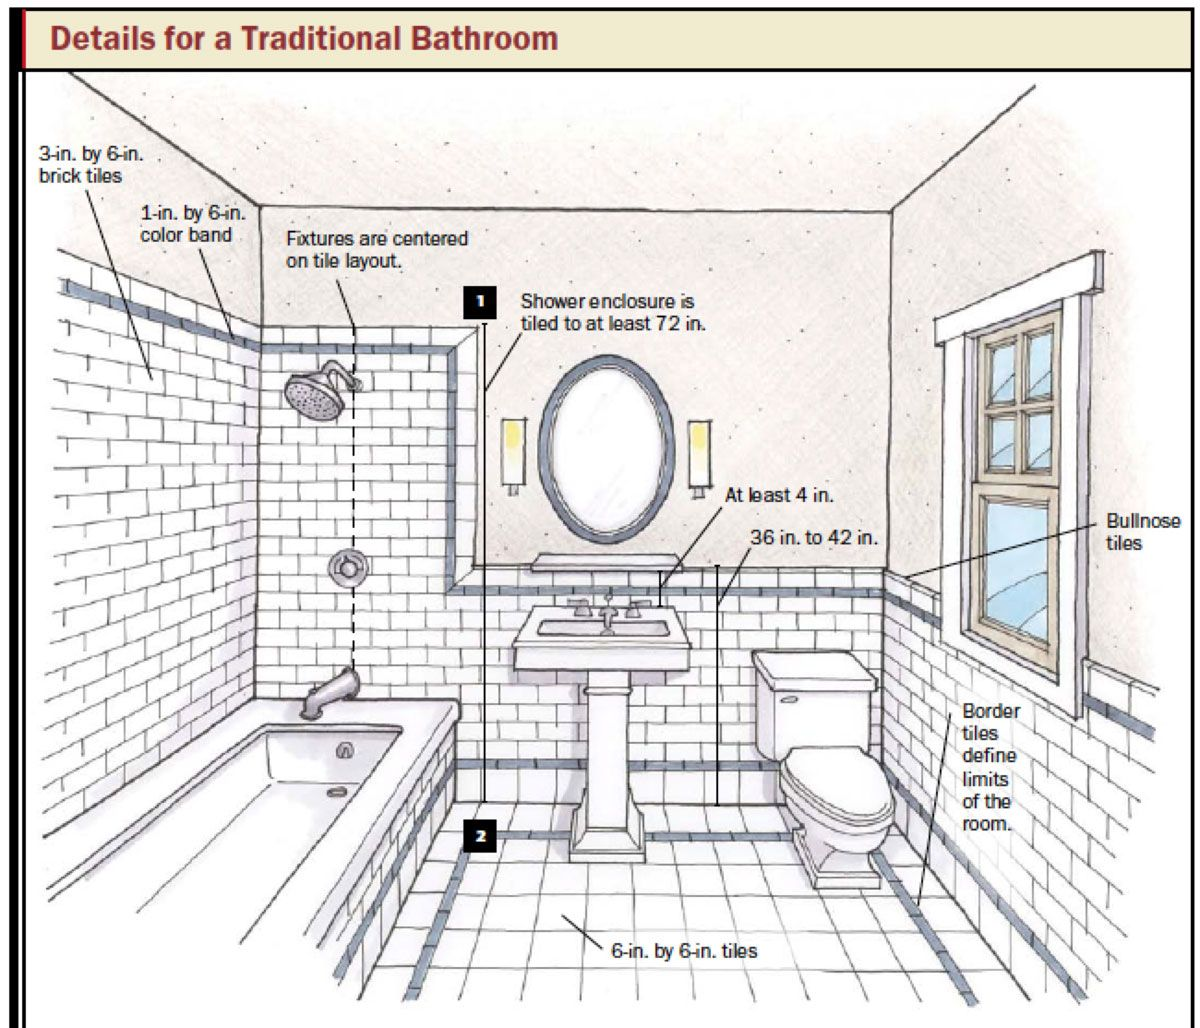 Bathroom Floor Plan Design Tool design bathroom floor plan tool | bathroom and kitchen design: how